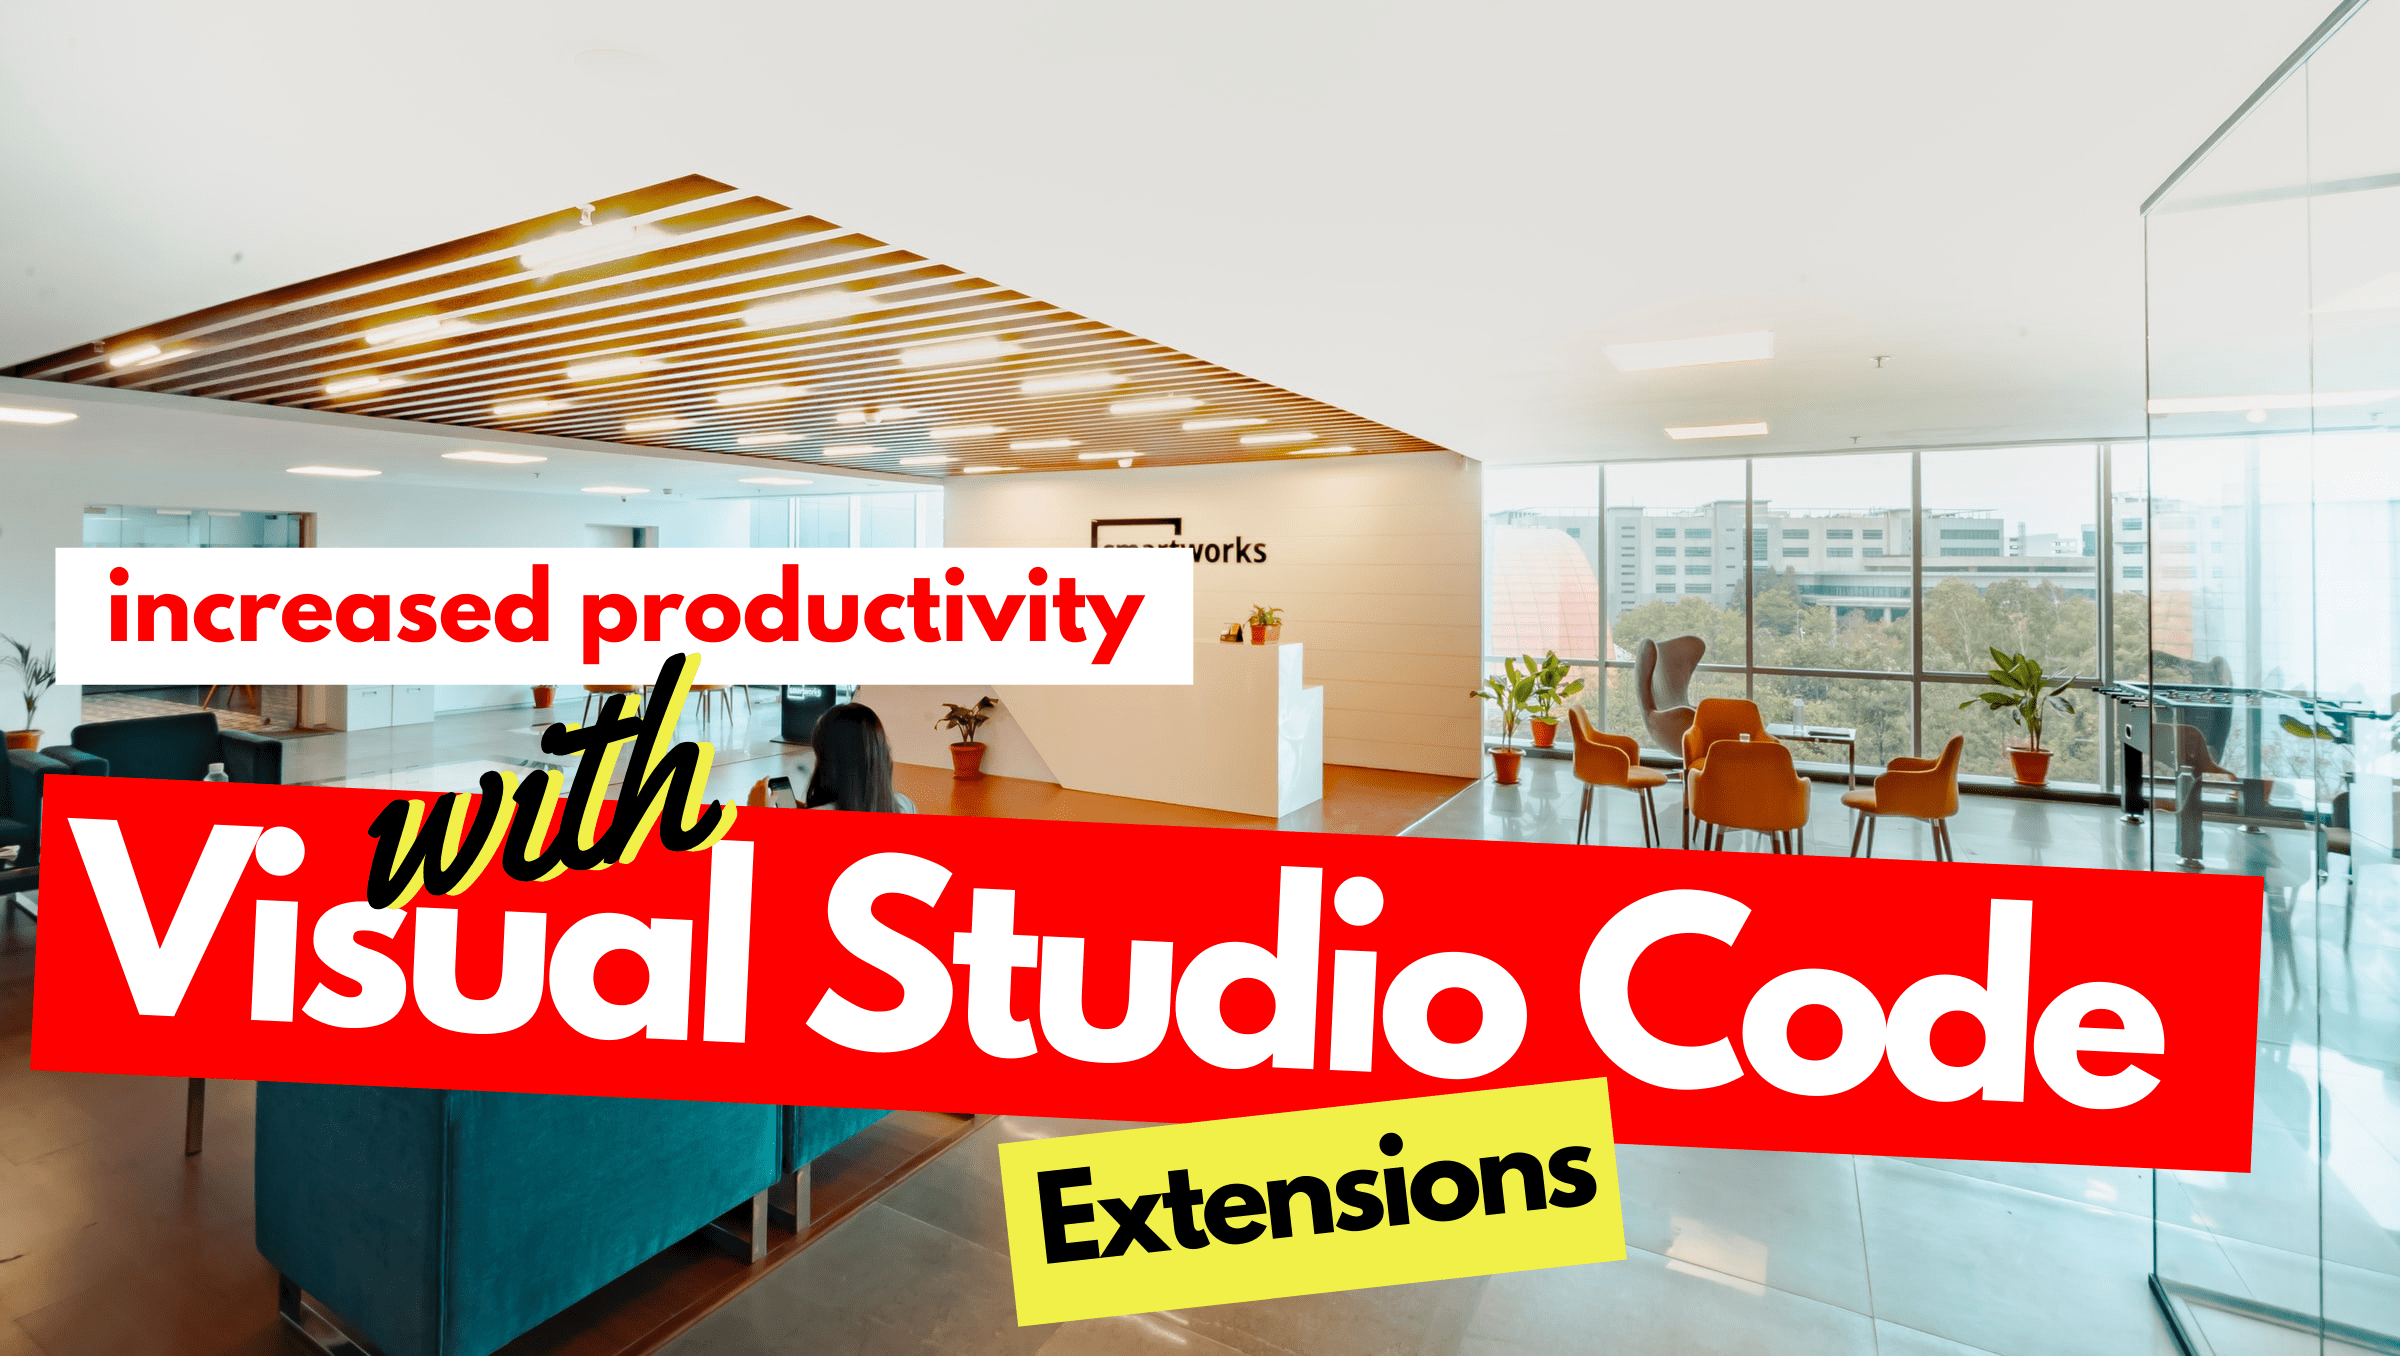 Best Visual Studio Code Extensions for Increased Productivity